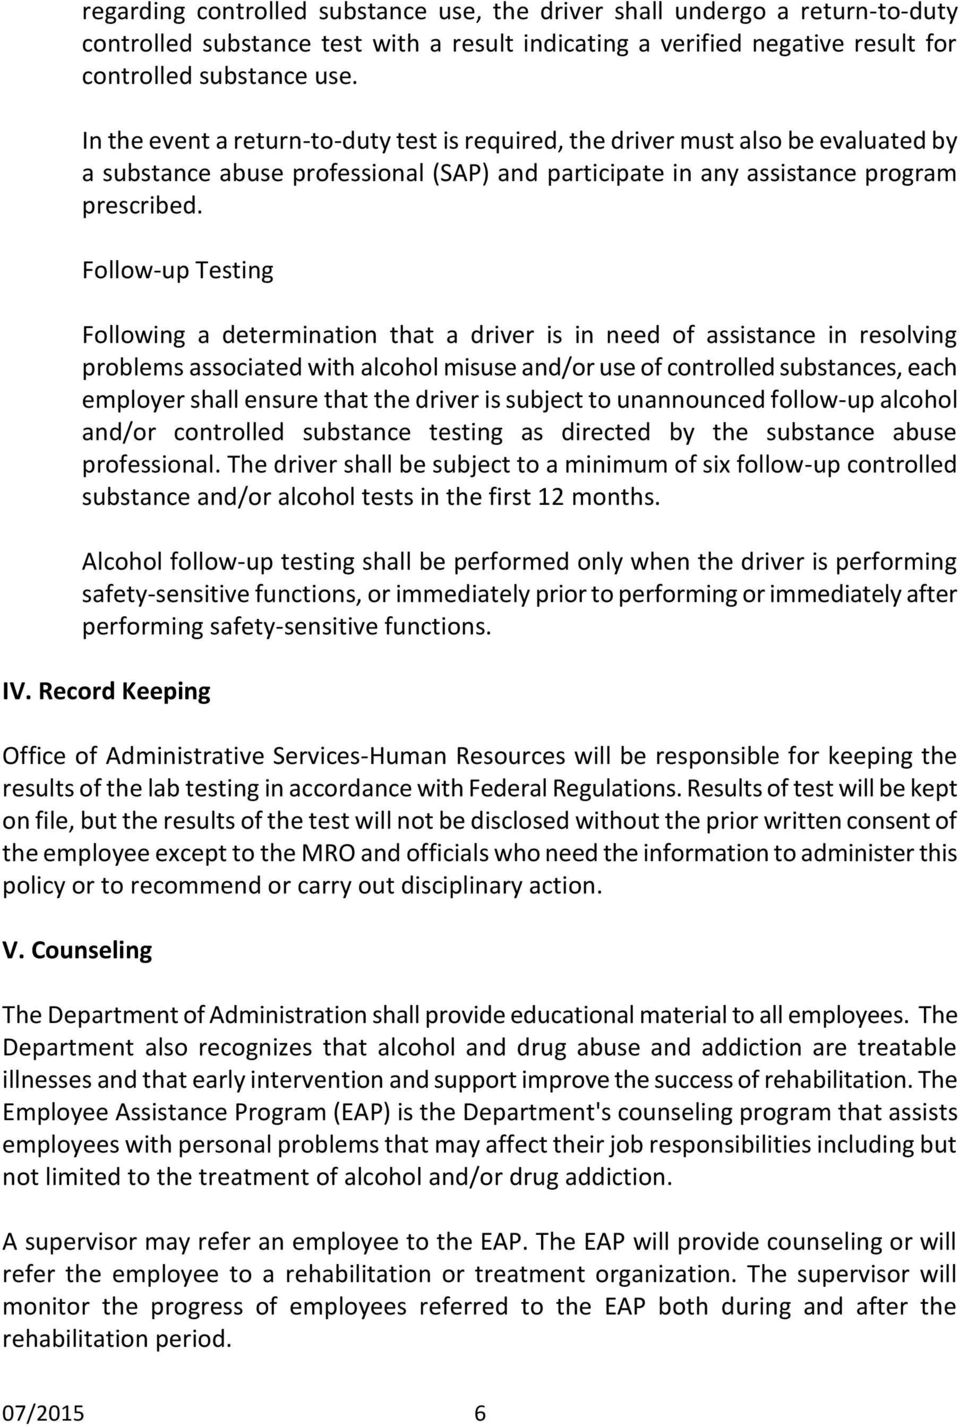 Follow-up Testing Following a determination that a driver is in need of assistance in resolving problems associated with alcohol misuse and/or use of controlled substances, each employer shall ensure